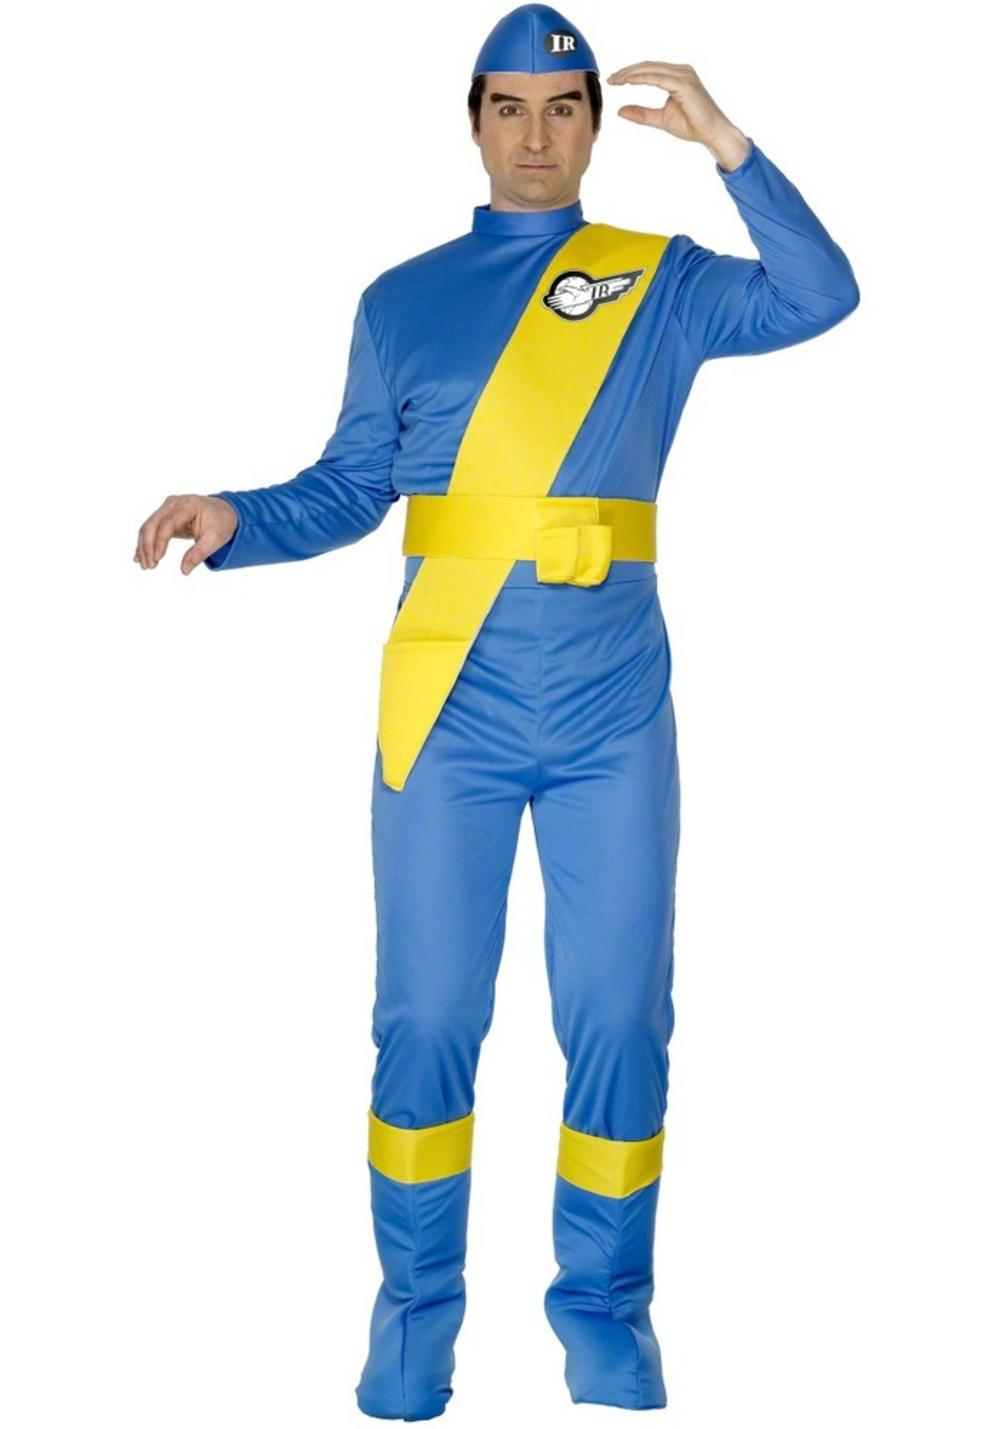 Mensu0027 Thunderbirds Virgil Tracy Fancy Dress Costume  sc 1 st  Mega Fancy Dress & Mensu0027 Thunderbirds Virgil Tracy Fancy Dress Costume | 60s Costumes ...